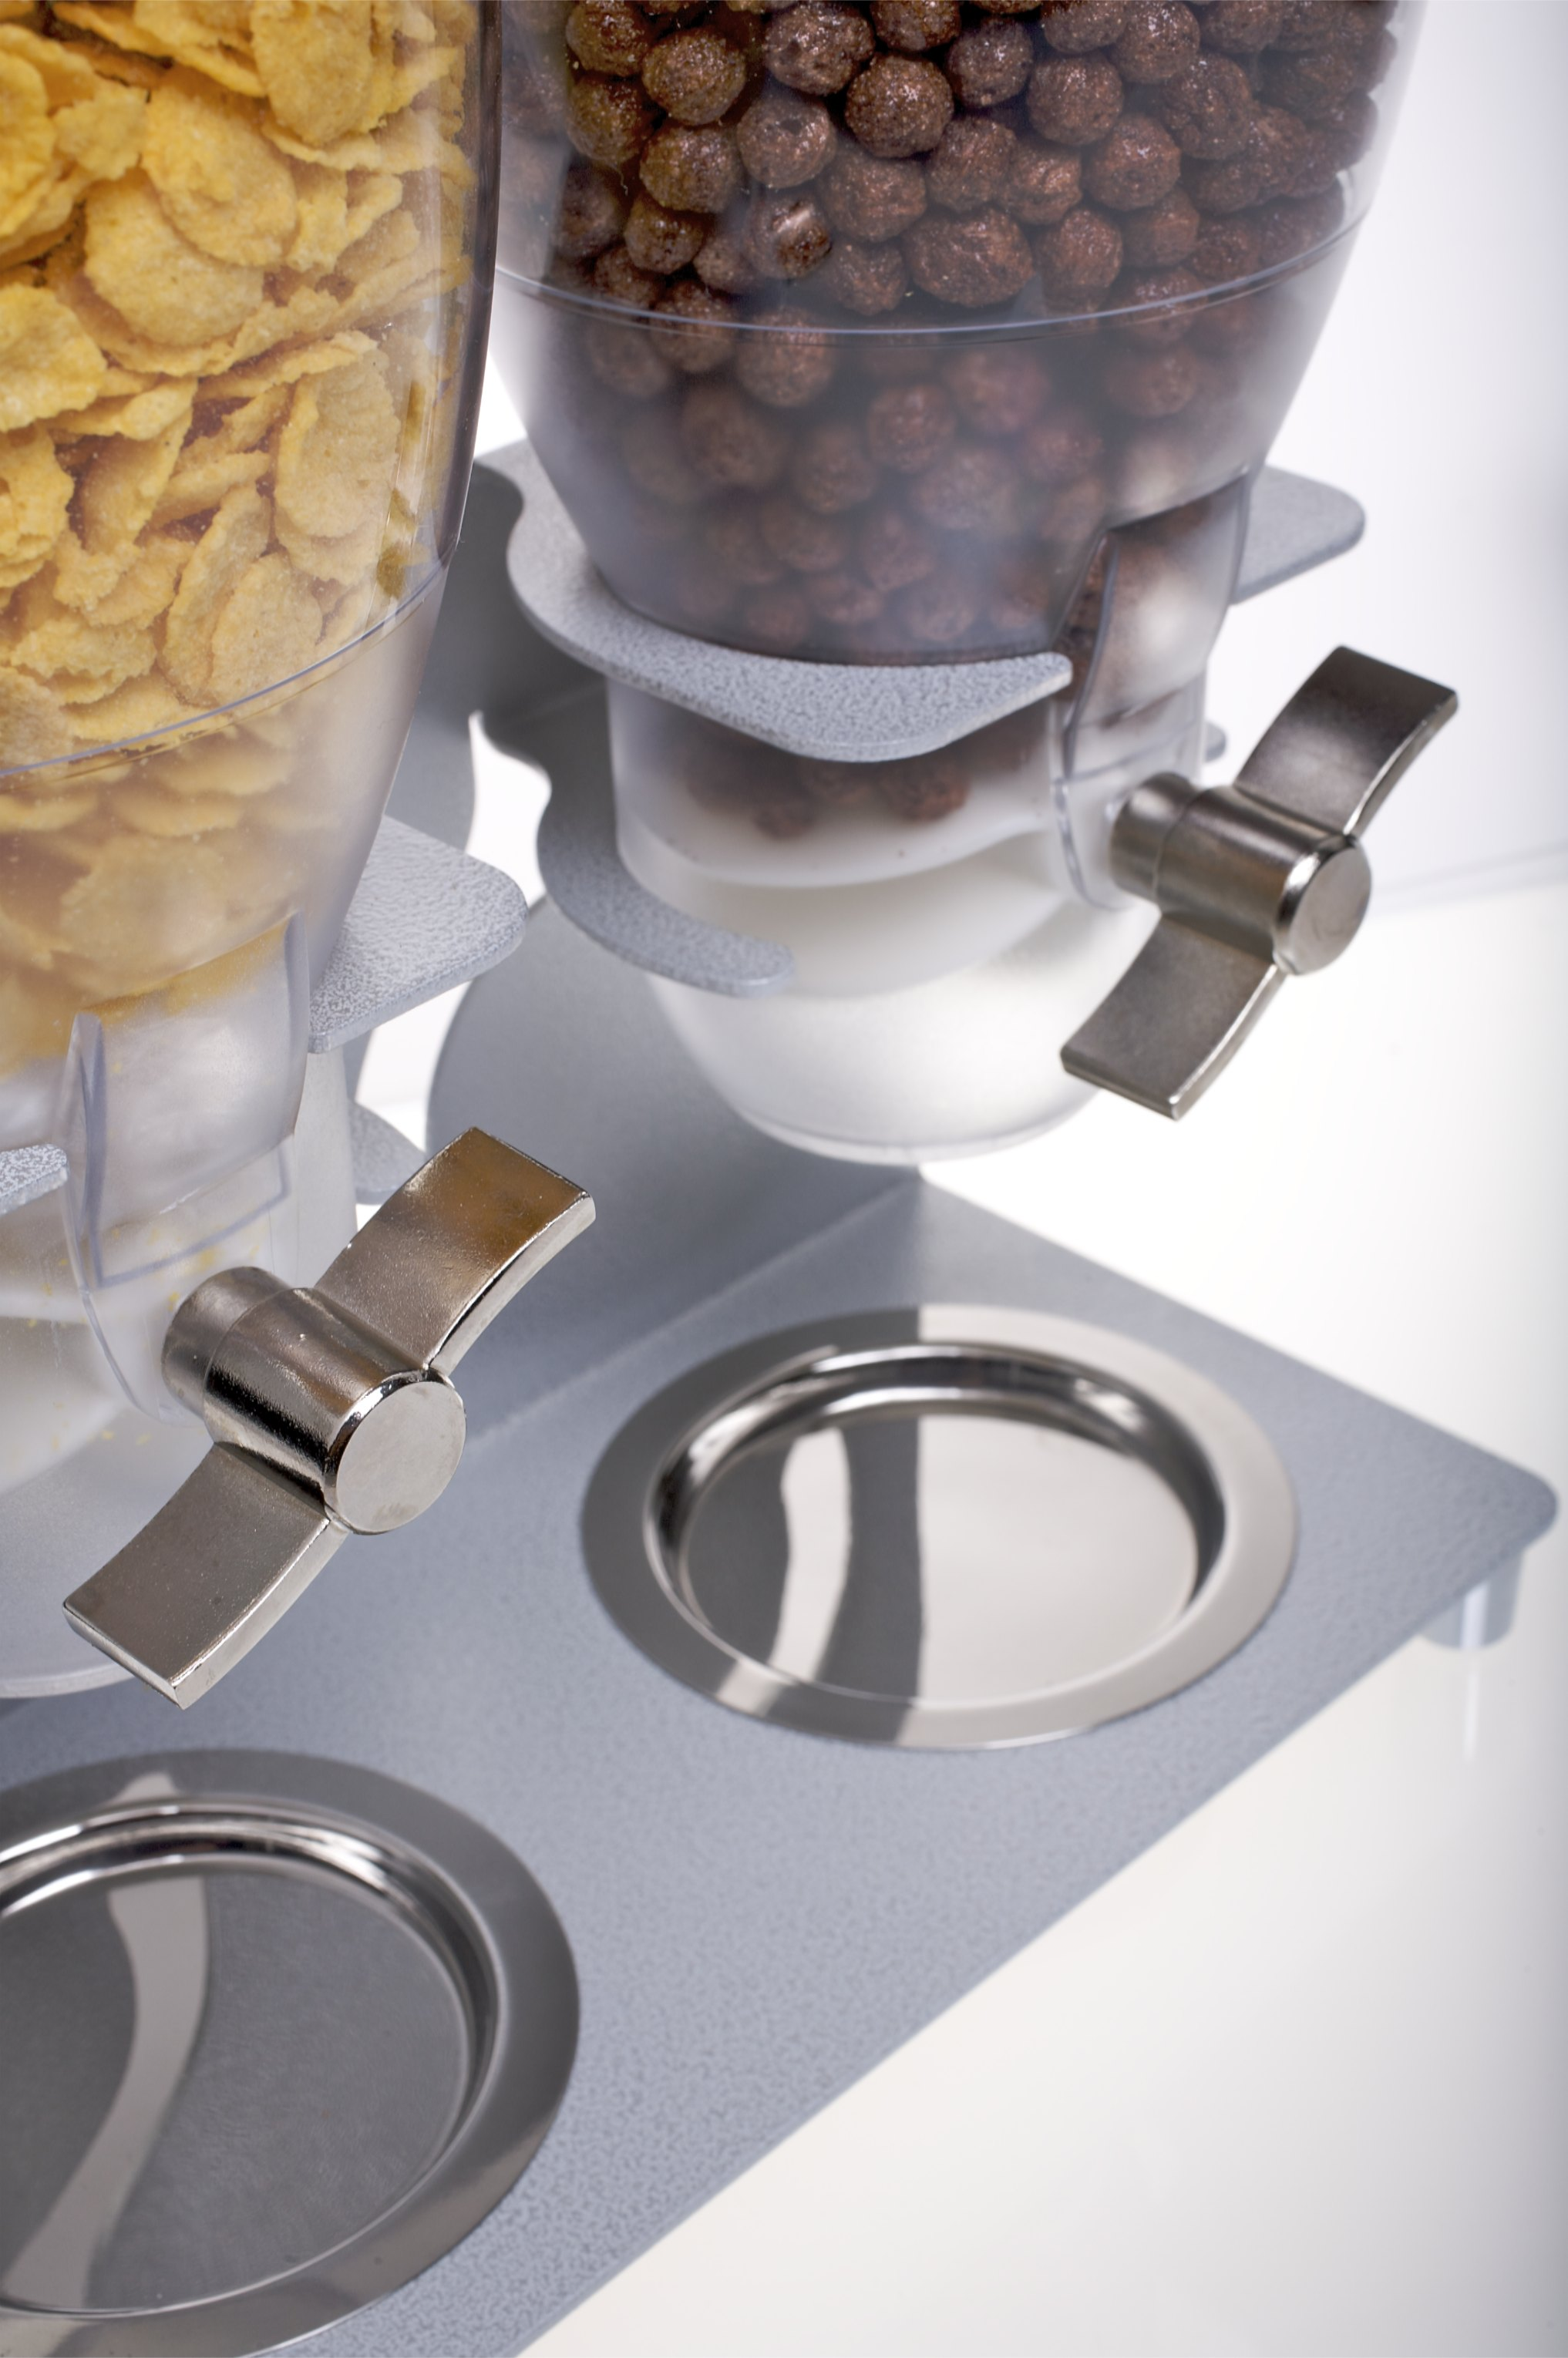 QEC offers a unique range of dry food dispensers for commercial, retail and private use.Utilizing high quality materials and exceptional designs - KELL200. Australian Distributor.